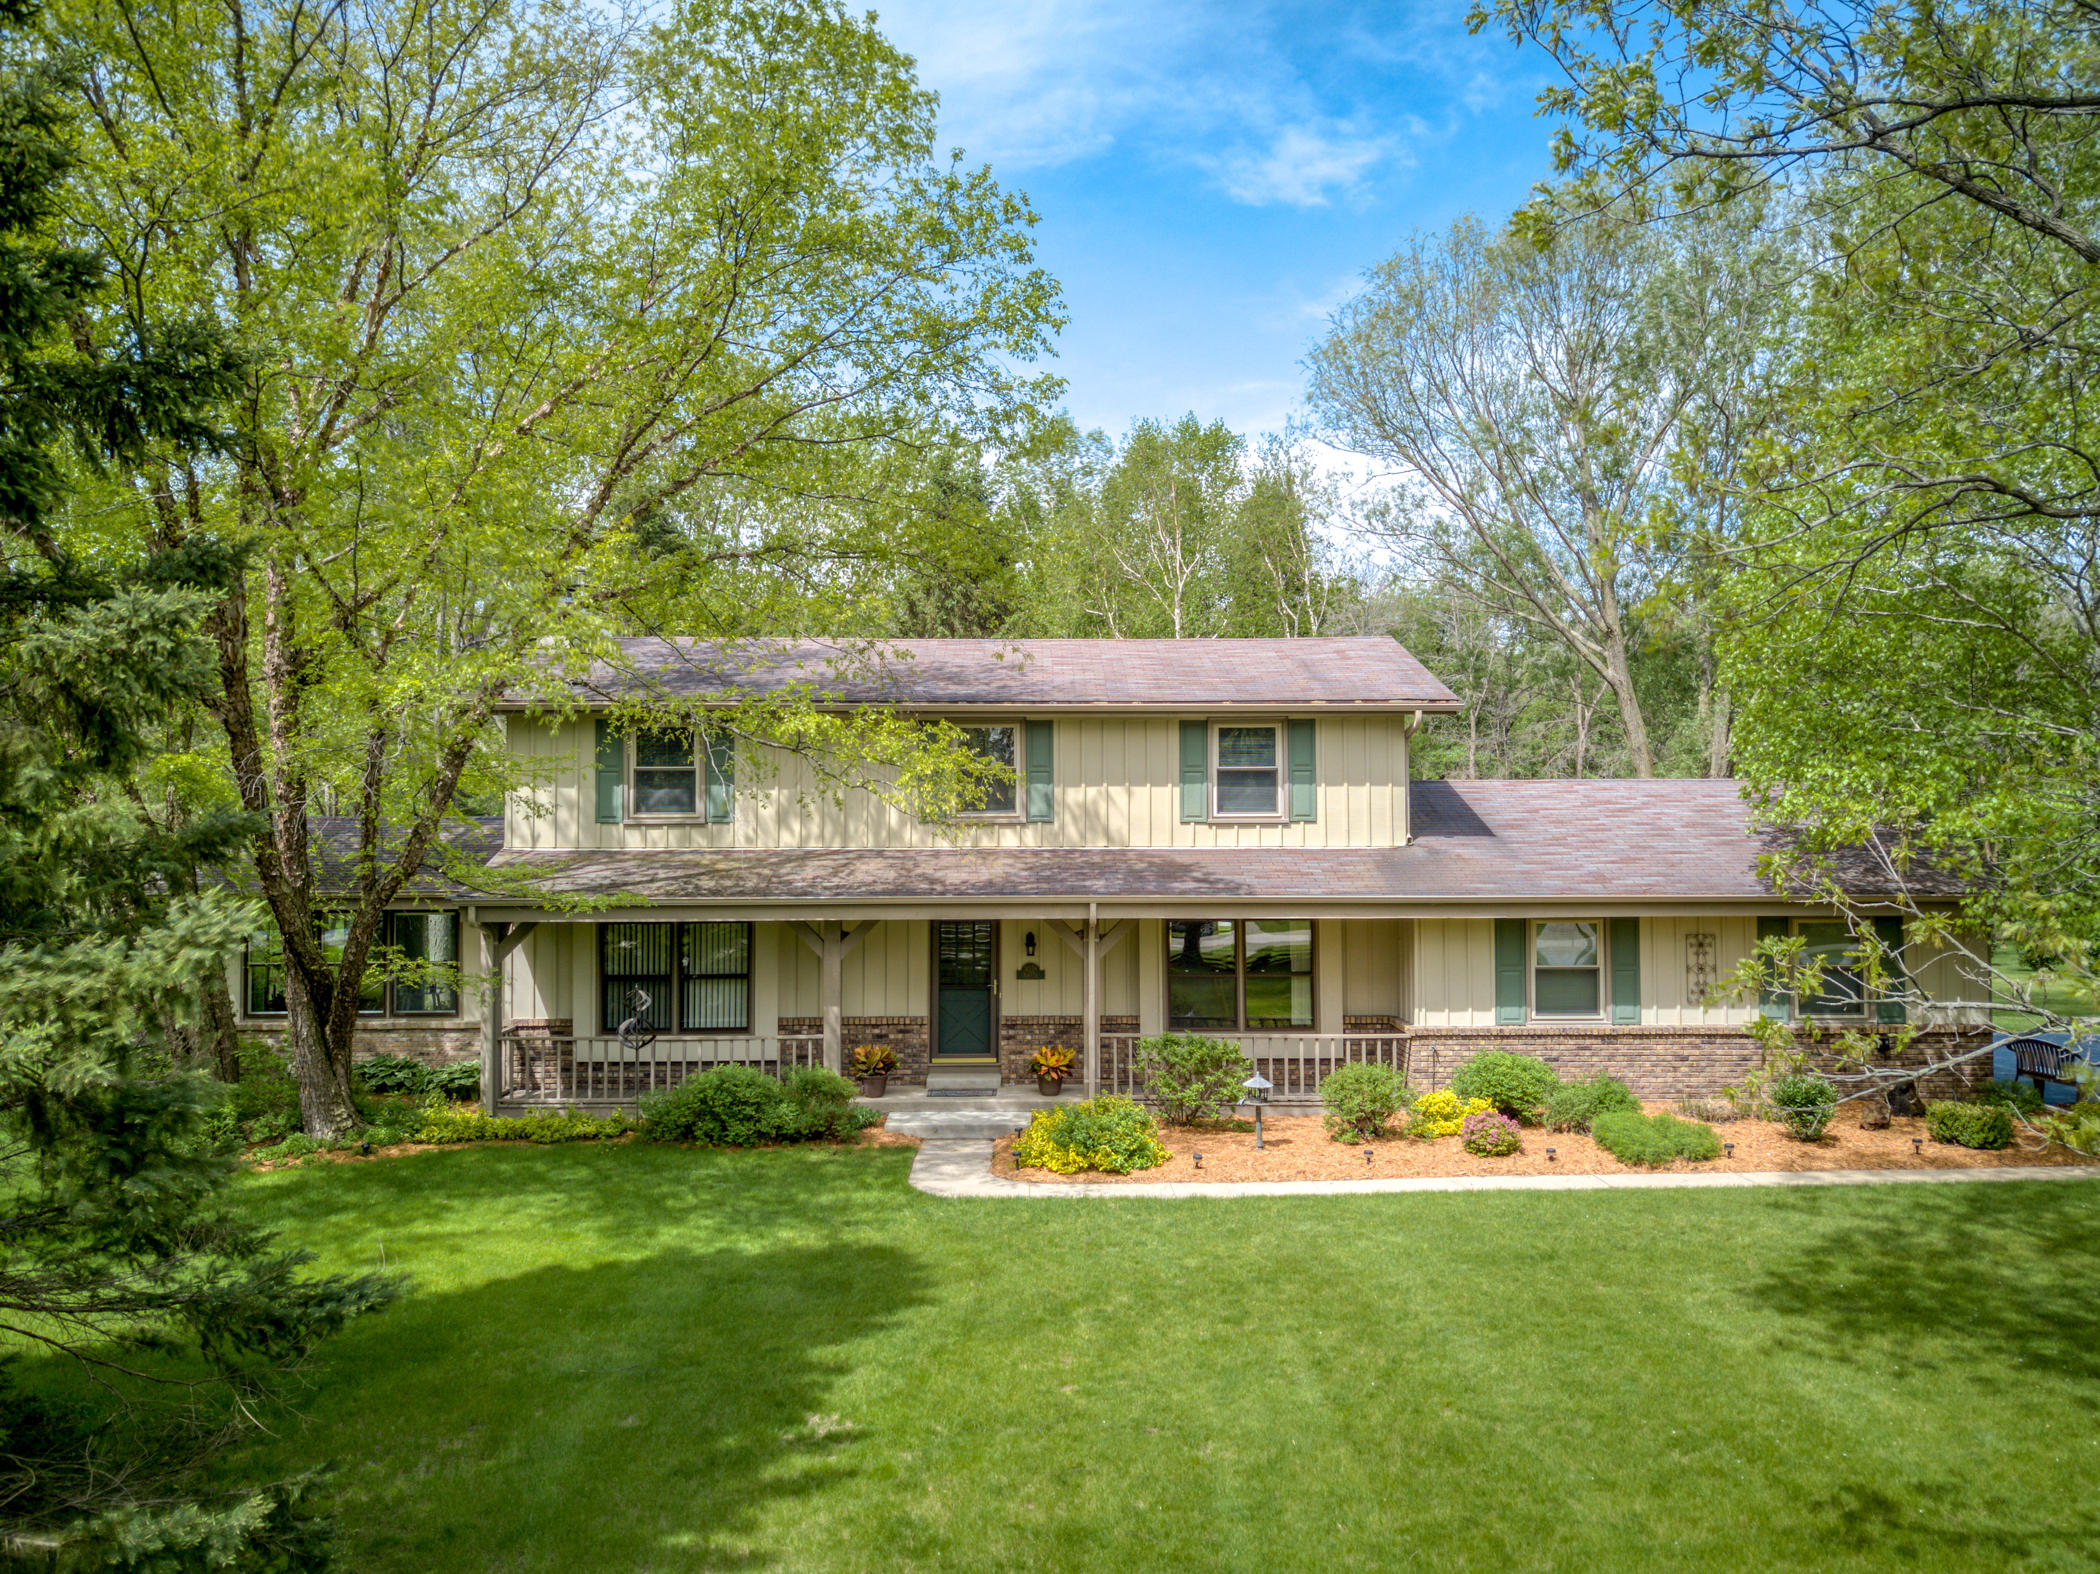 W238N4551 Woods Edge DR, Pewaukee, Wisconsin 53072, 4 Bedrooms Bedrooms, 11 Rooms Rooms,2 BathroomsBathrooms,Single-Family,For Sale,Woods Edge DR,1639345